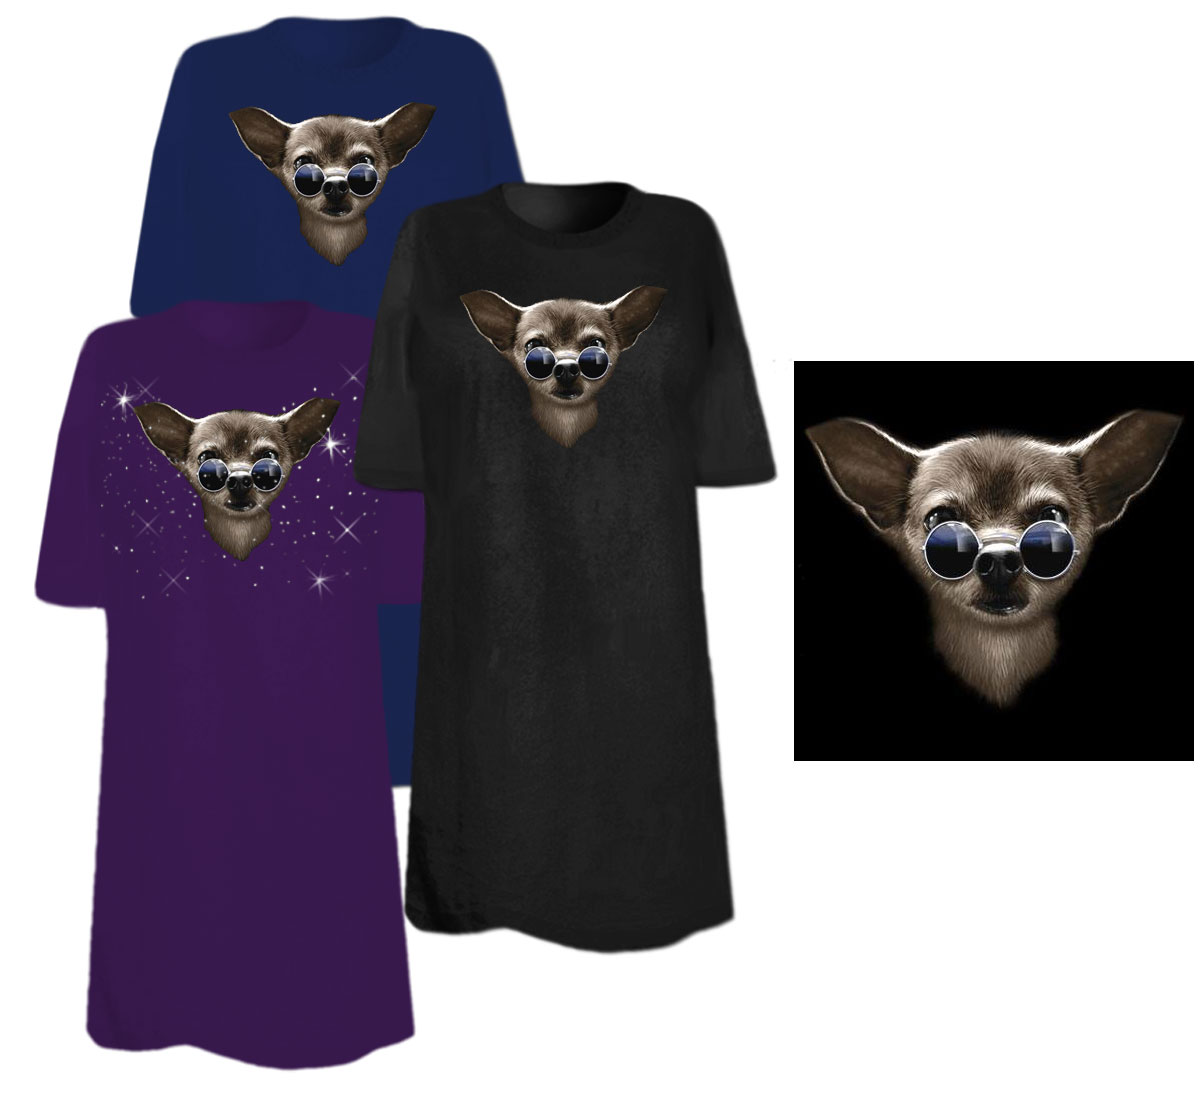 Sale cool chihuahua plus size supersize t shirts s m l for 3x shirts on sale